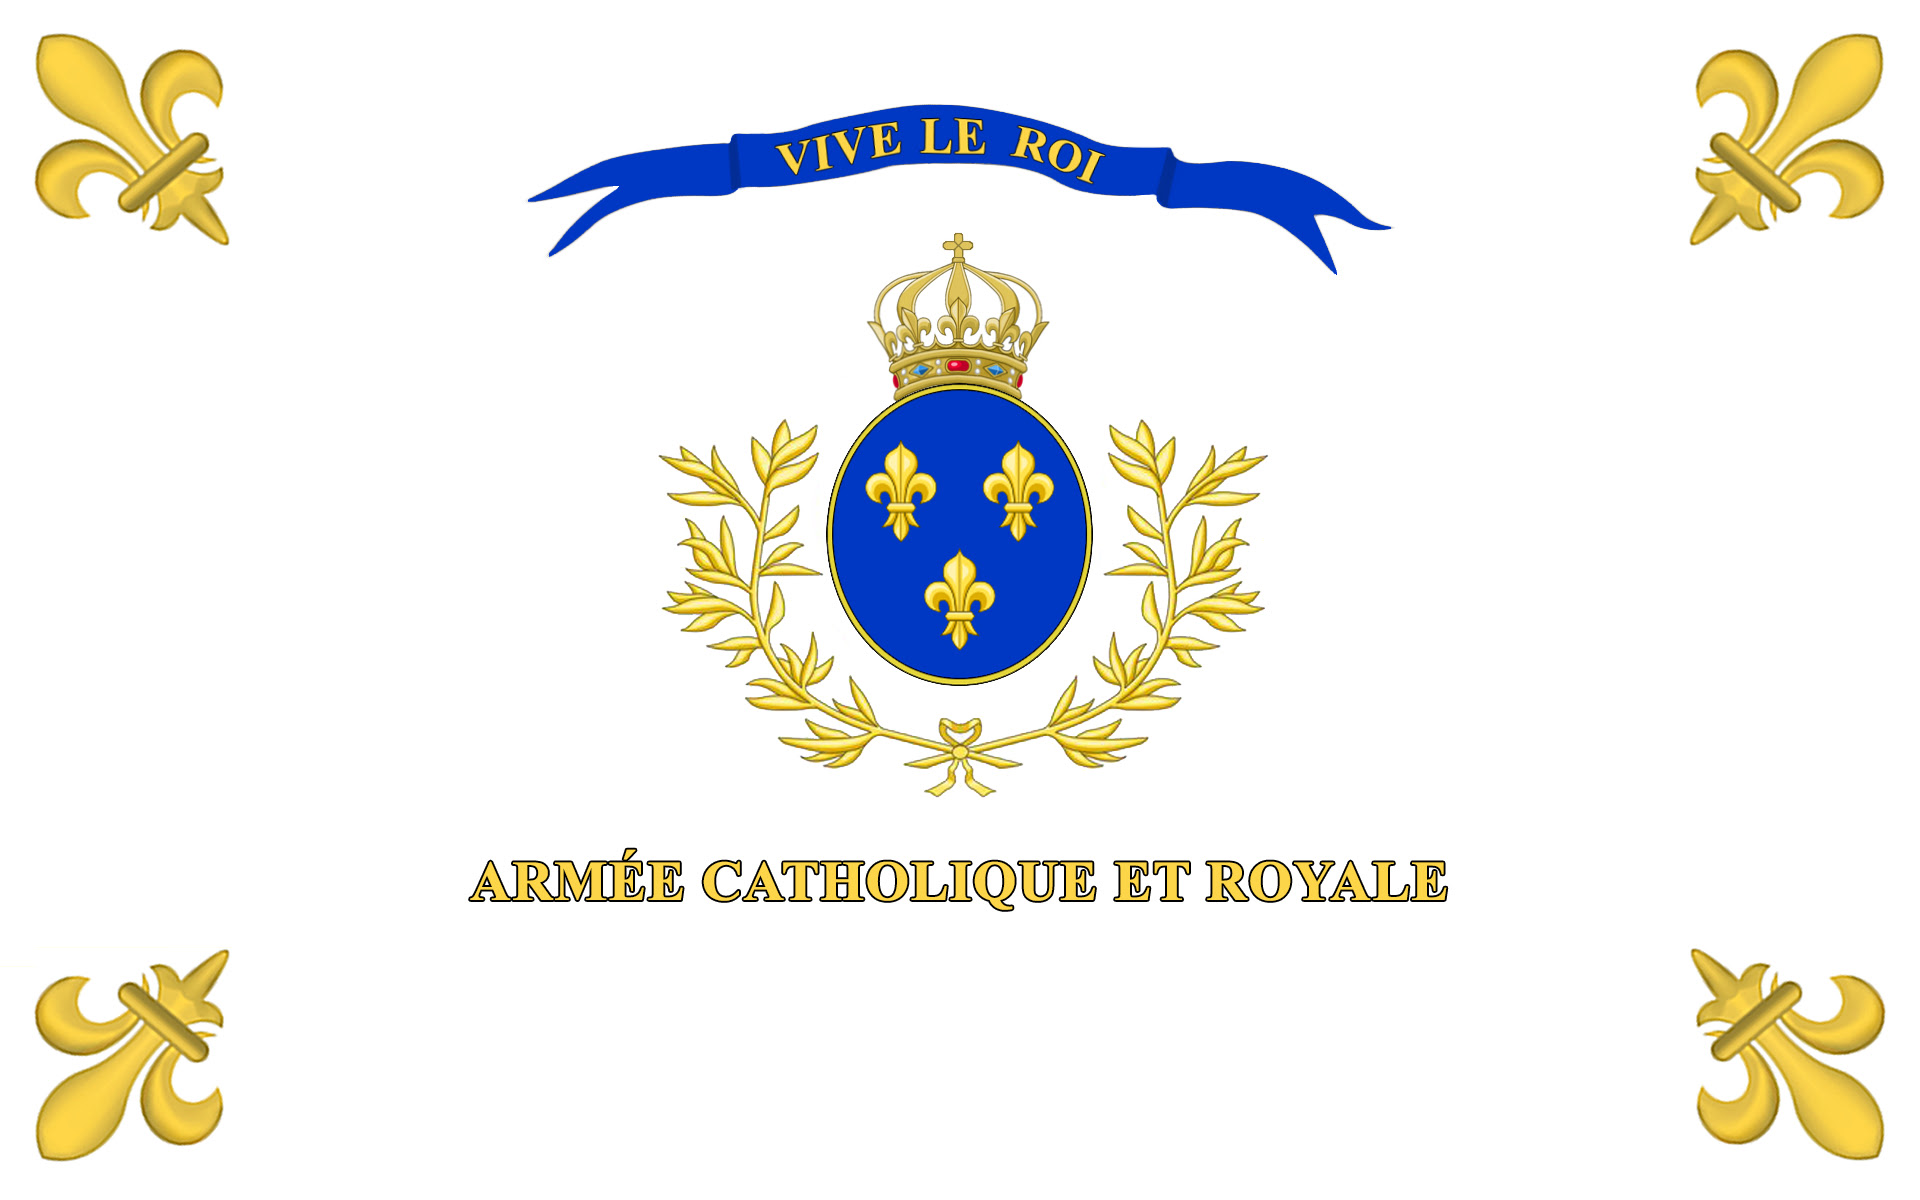 The Banner of the Catholic and Royal Army of Vendée